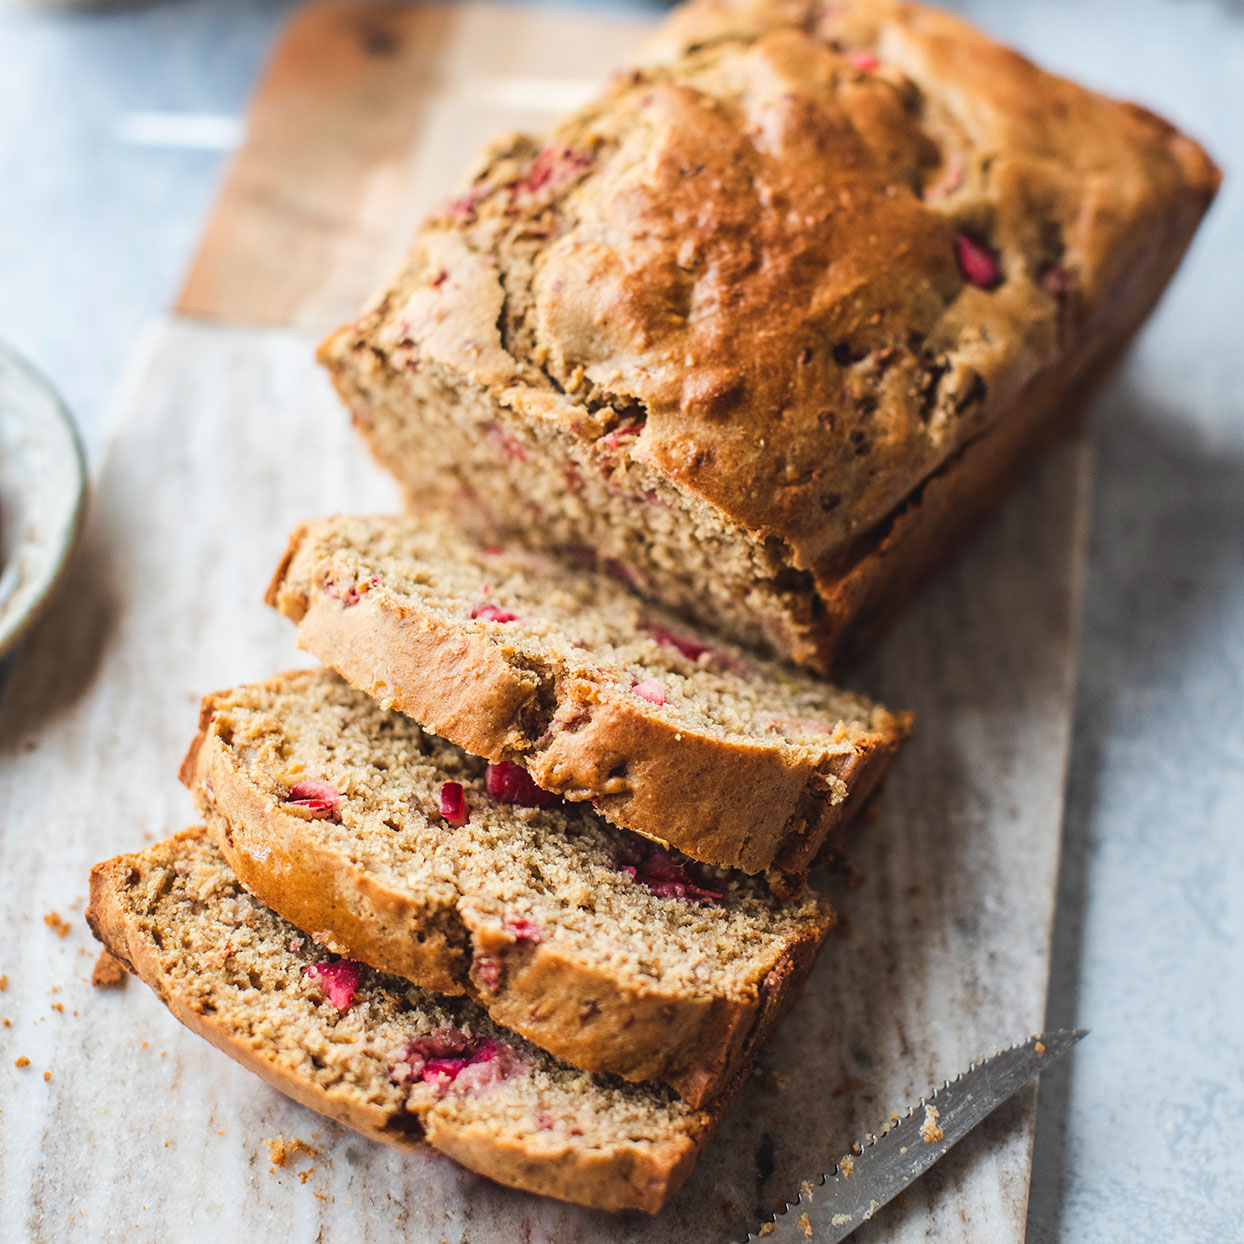 Sweet raspberries and tangy rhubarb jibe beautifully in this spring-inspired whole-wheat quick bread recipe.Source: EatingWell.com, February 2017